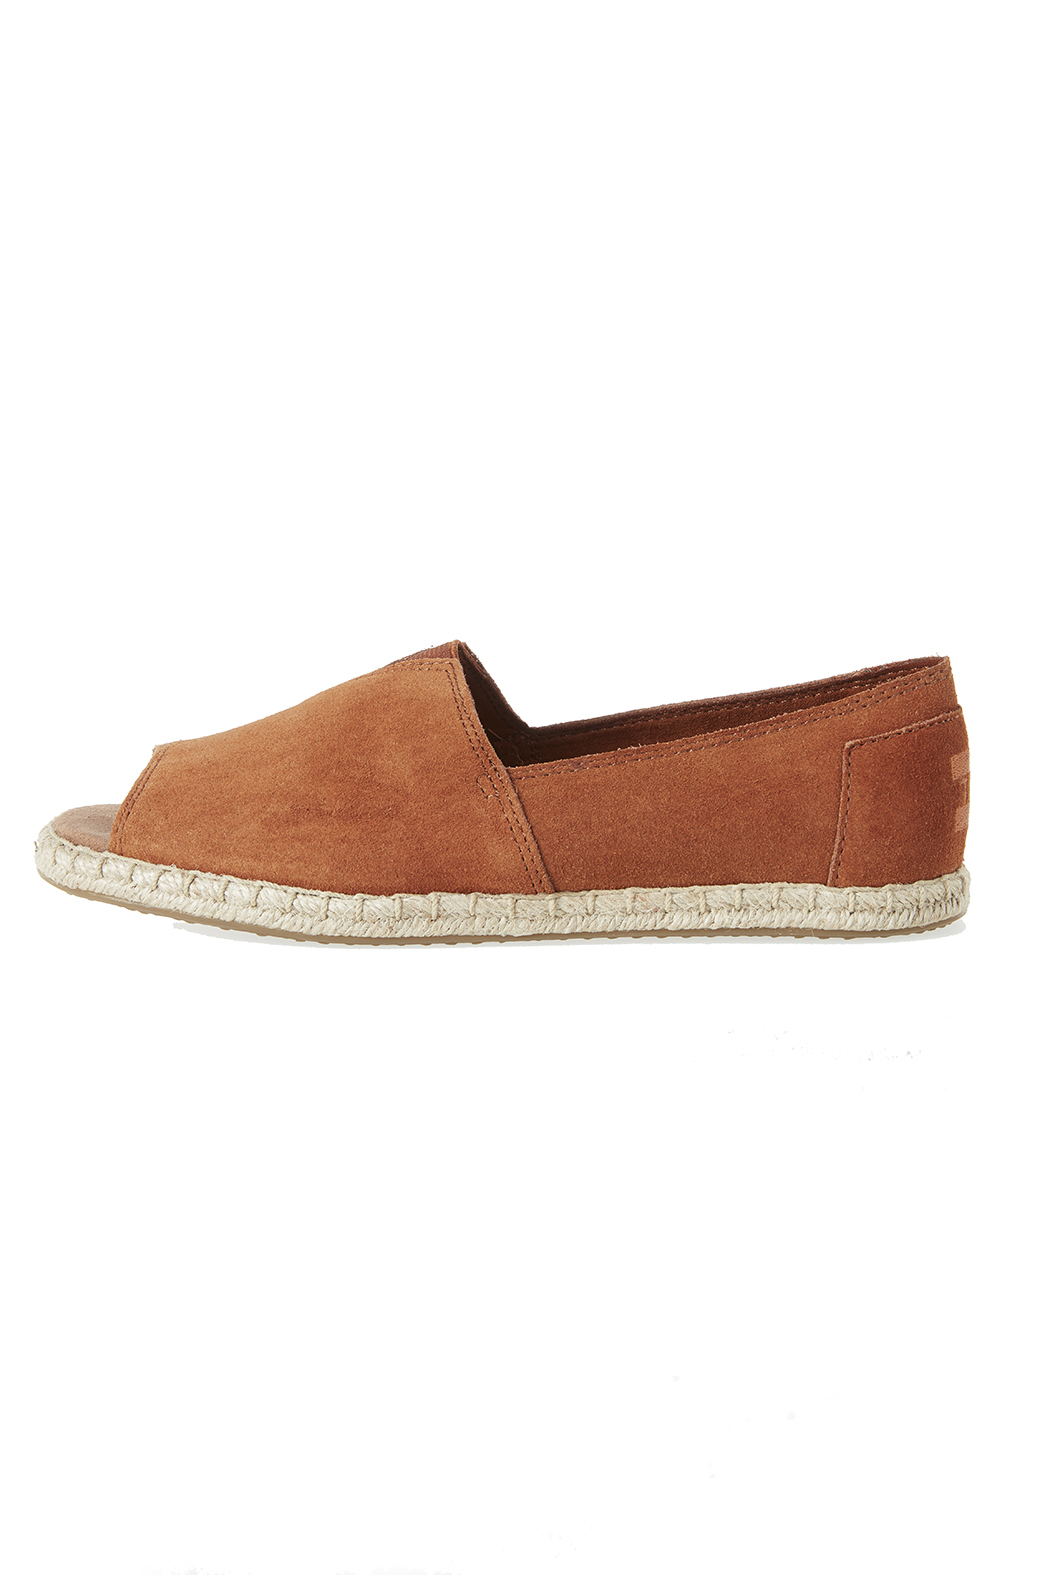 TOMS Alpargata Open Toe from Omaha by Roots + Wings — Shoptiques f4062e5f4ca